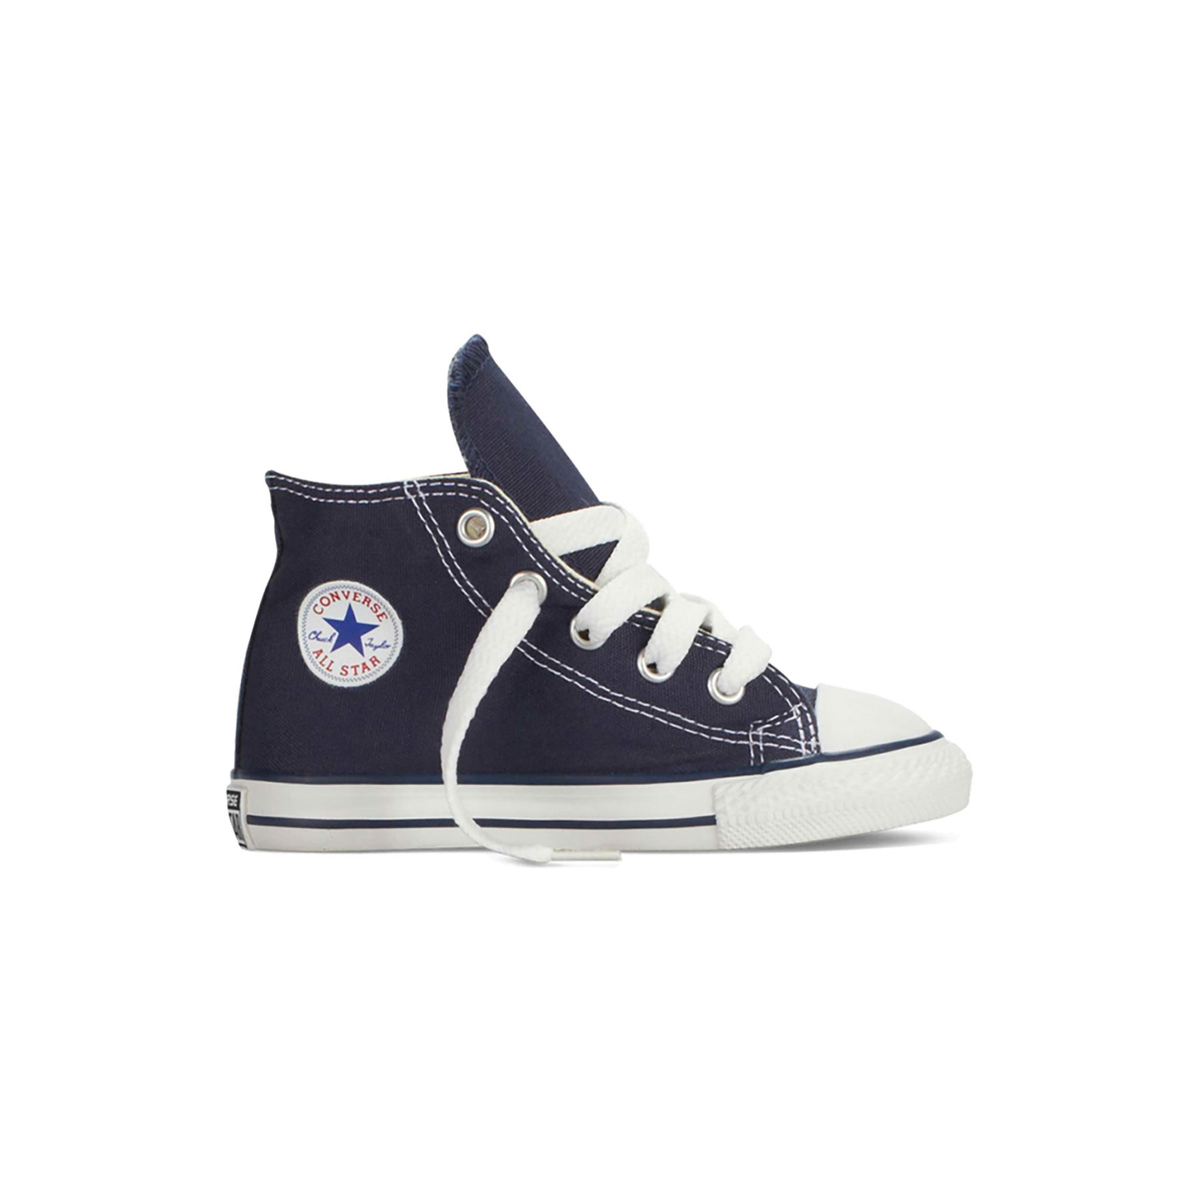 CHUCK TAYLOR ALL STAR HI BABY